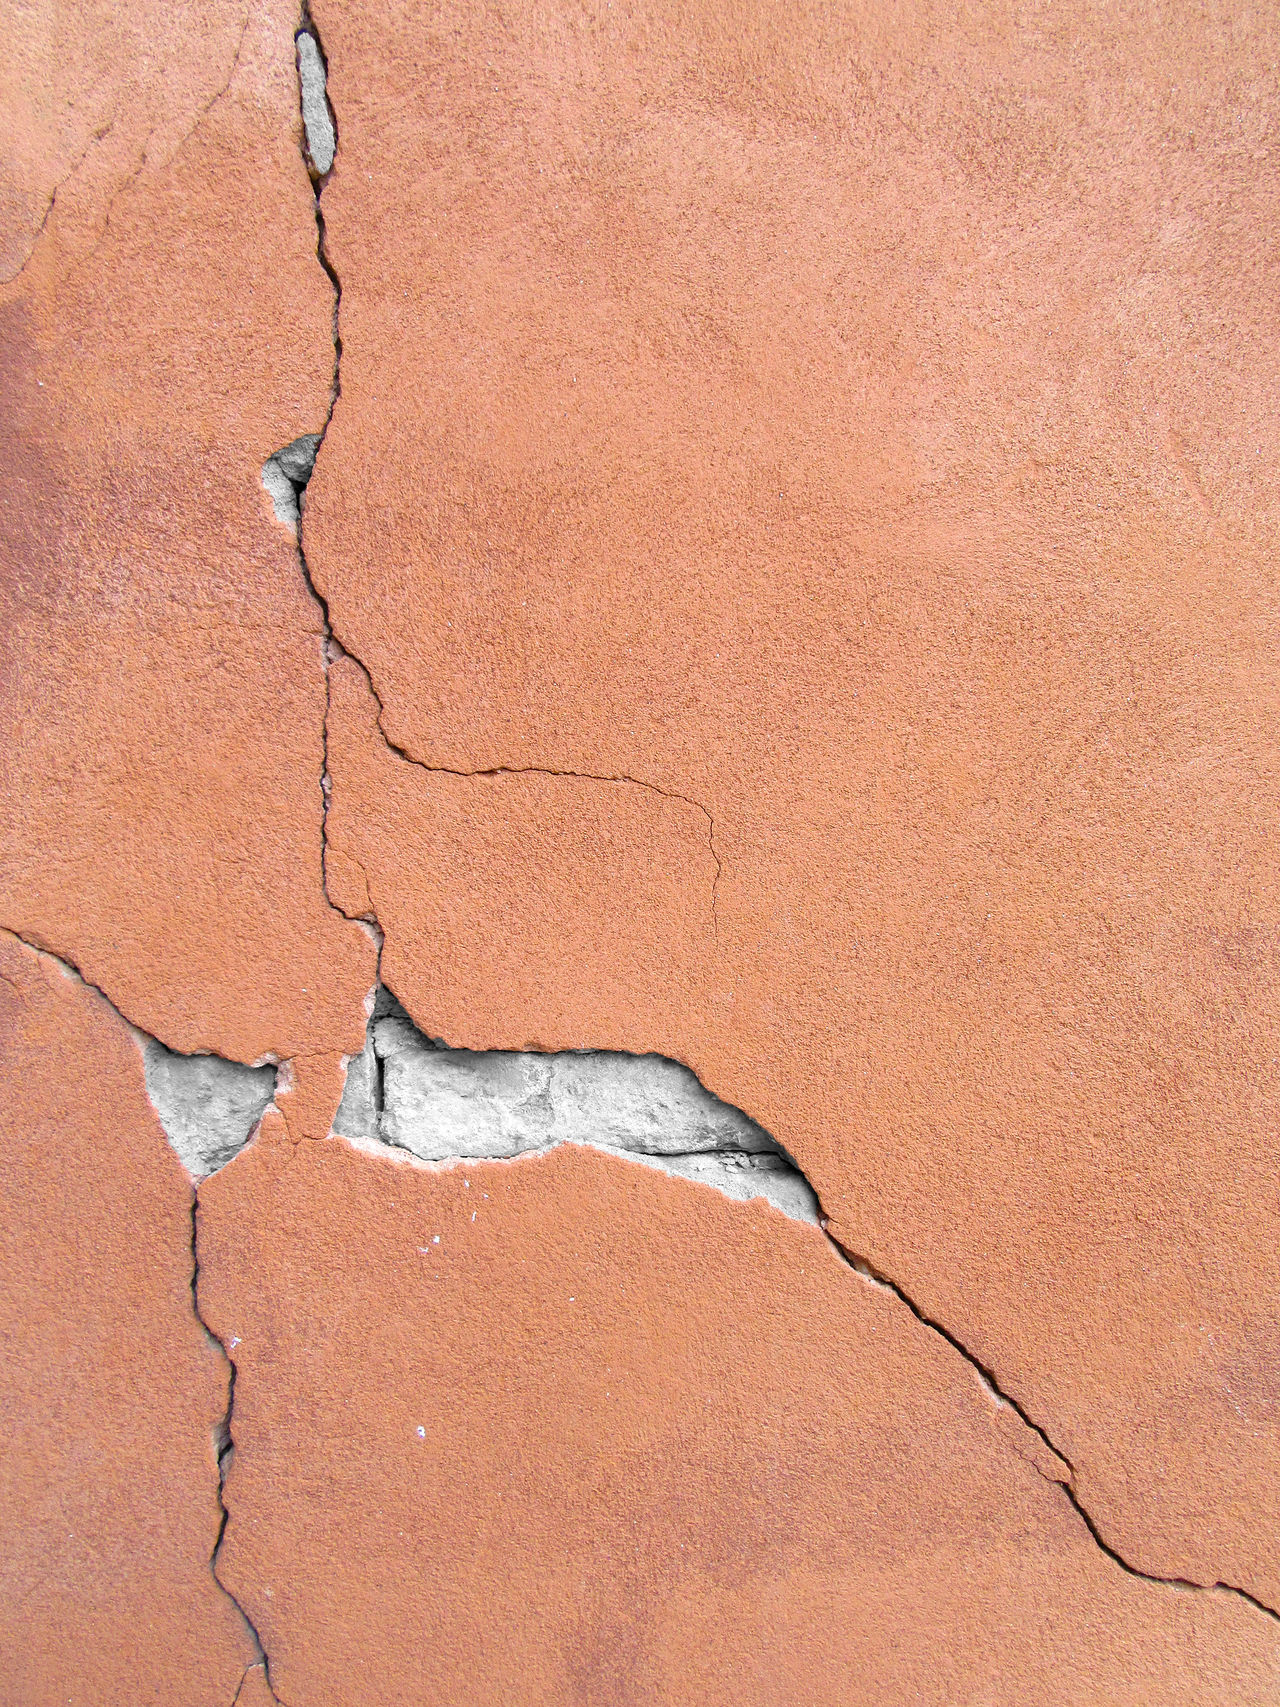 Cracked plastered concrete wall Abstract Arid Climate Backgrounds Brown Close-up Cracked Damaged Day Dividing Full Frame Geology Nature No People Orange Outdoors Paint Pattern Textured  Textured Effect Weathered